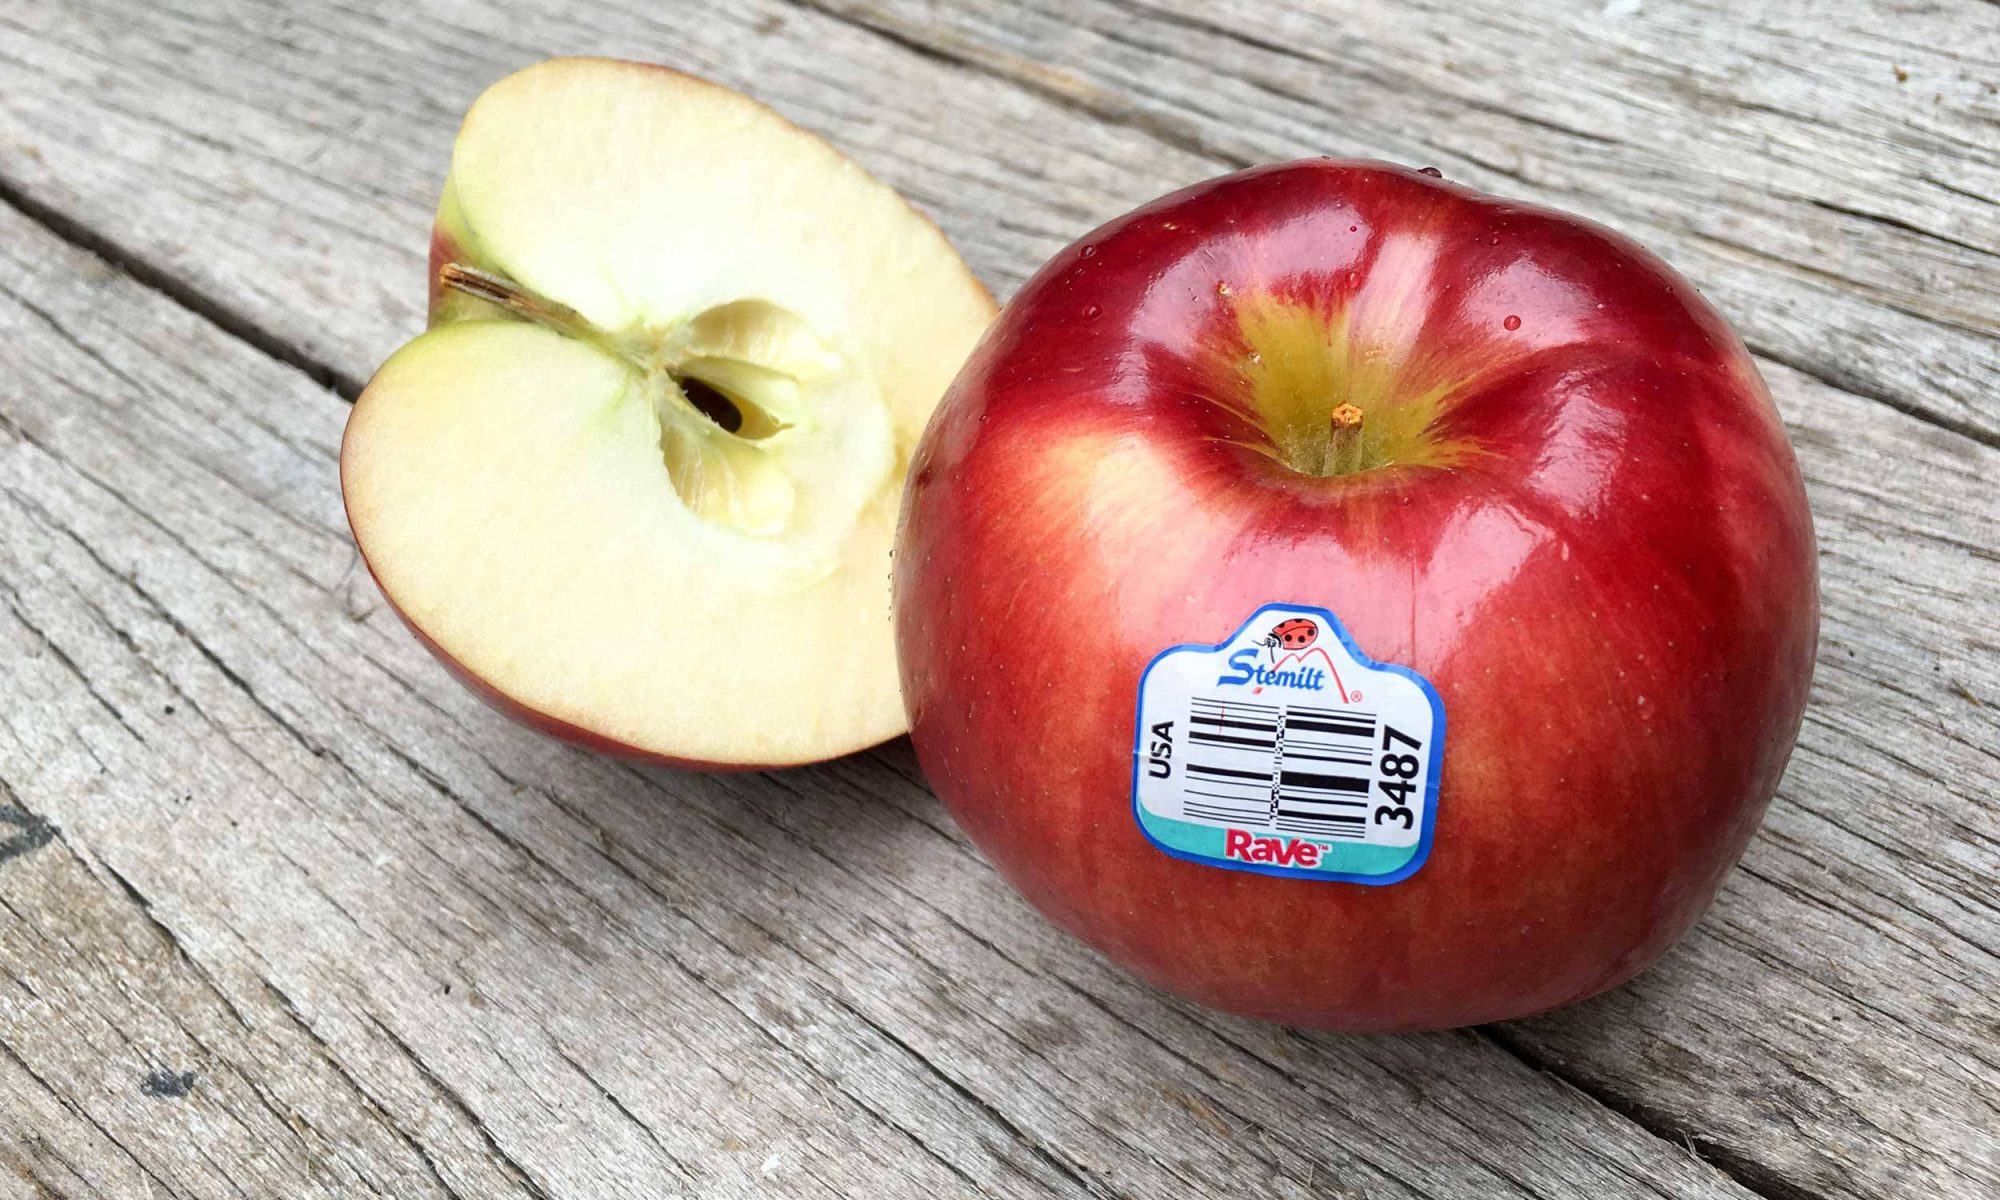 This New Type of Apple Is Coming to Your Supermarket | MyRecipes